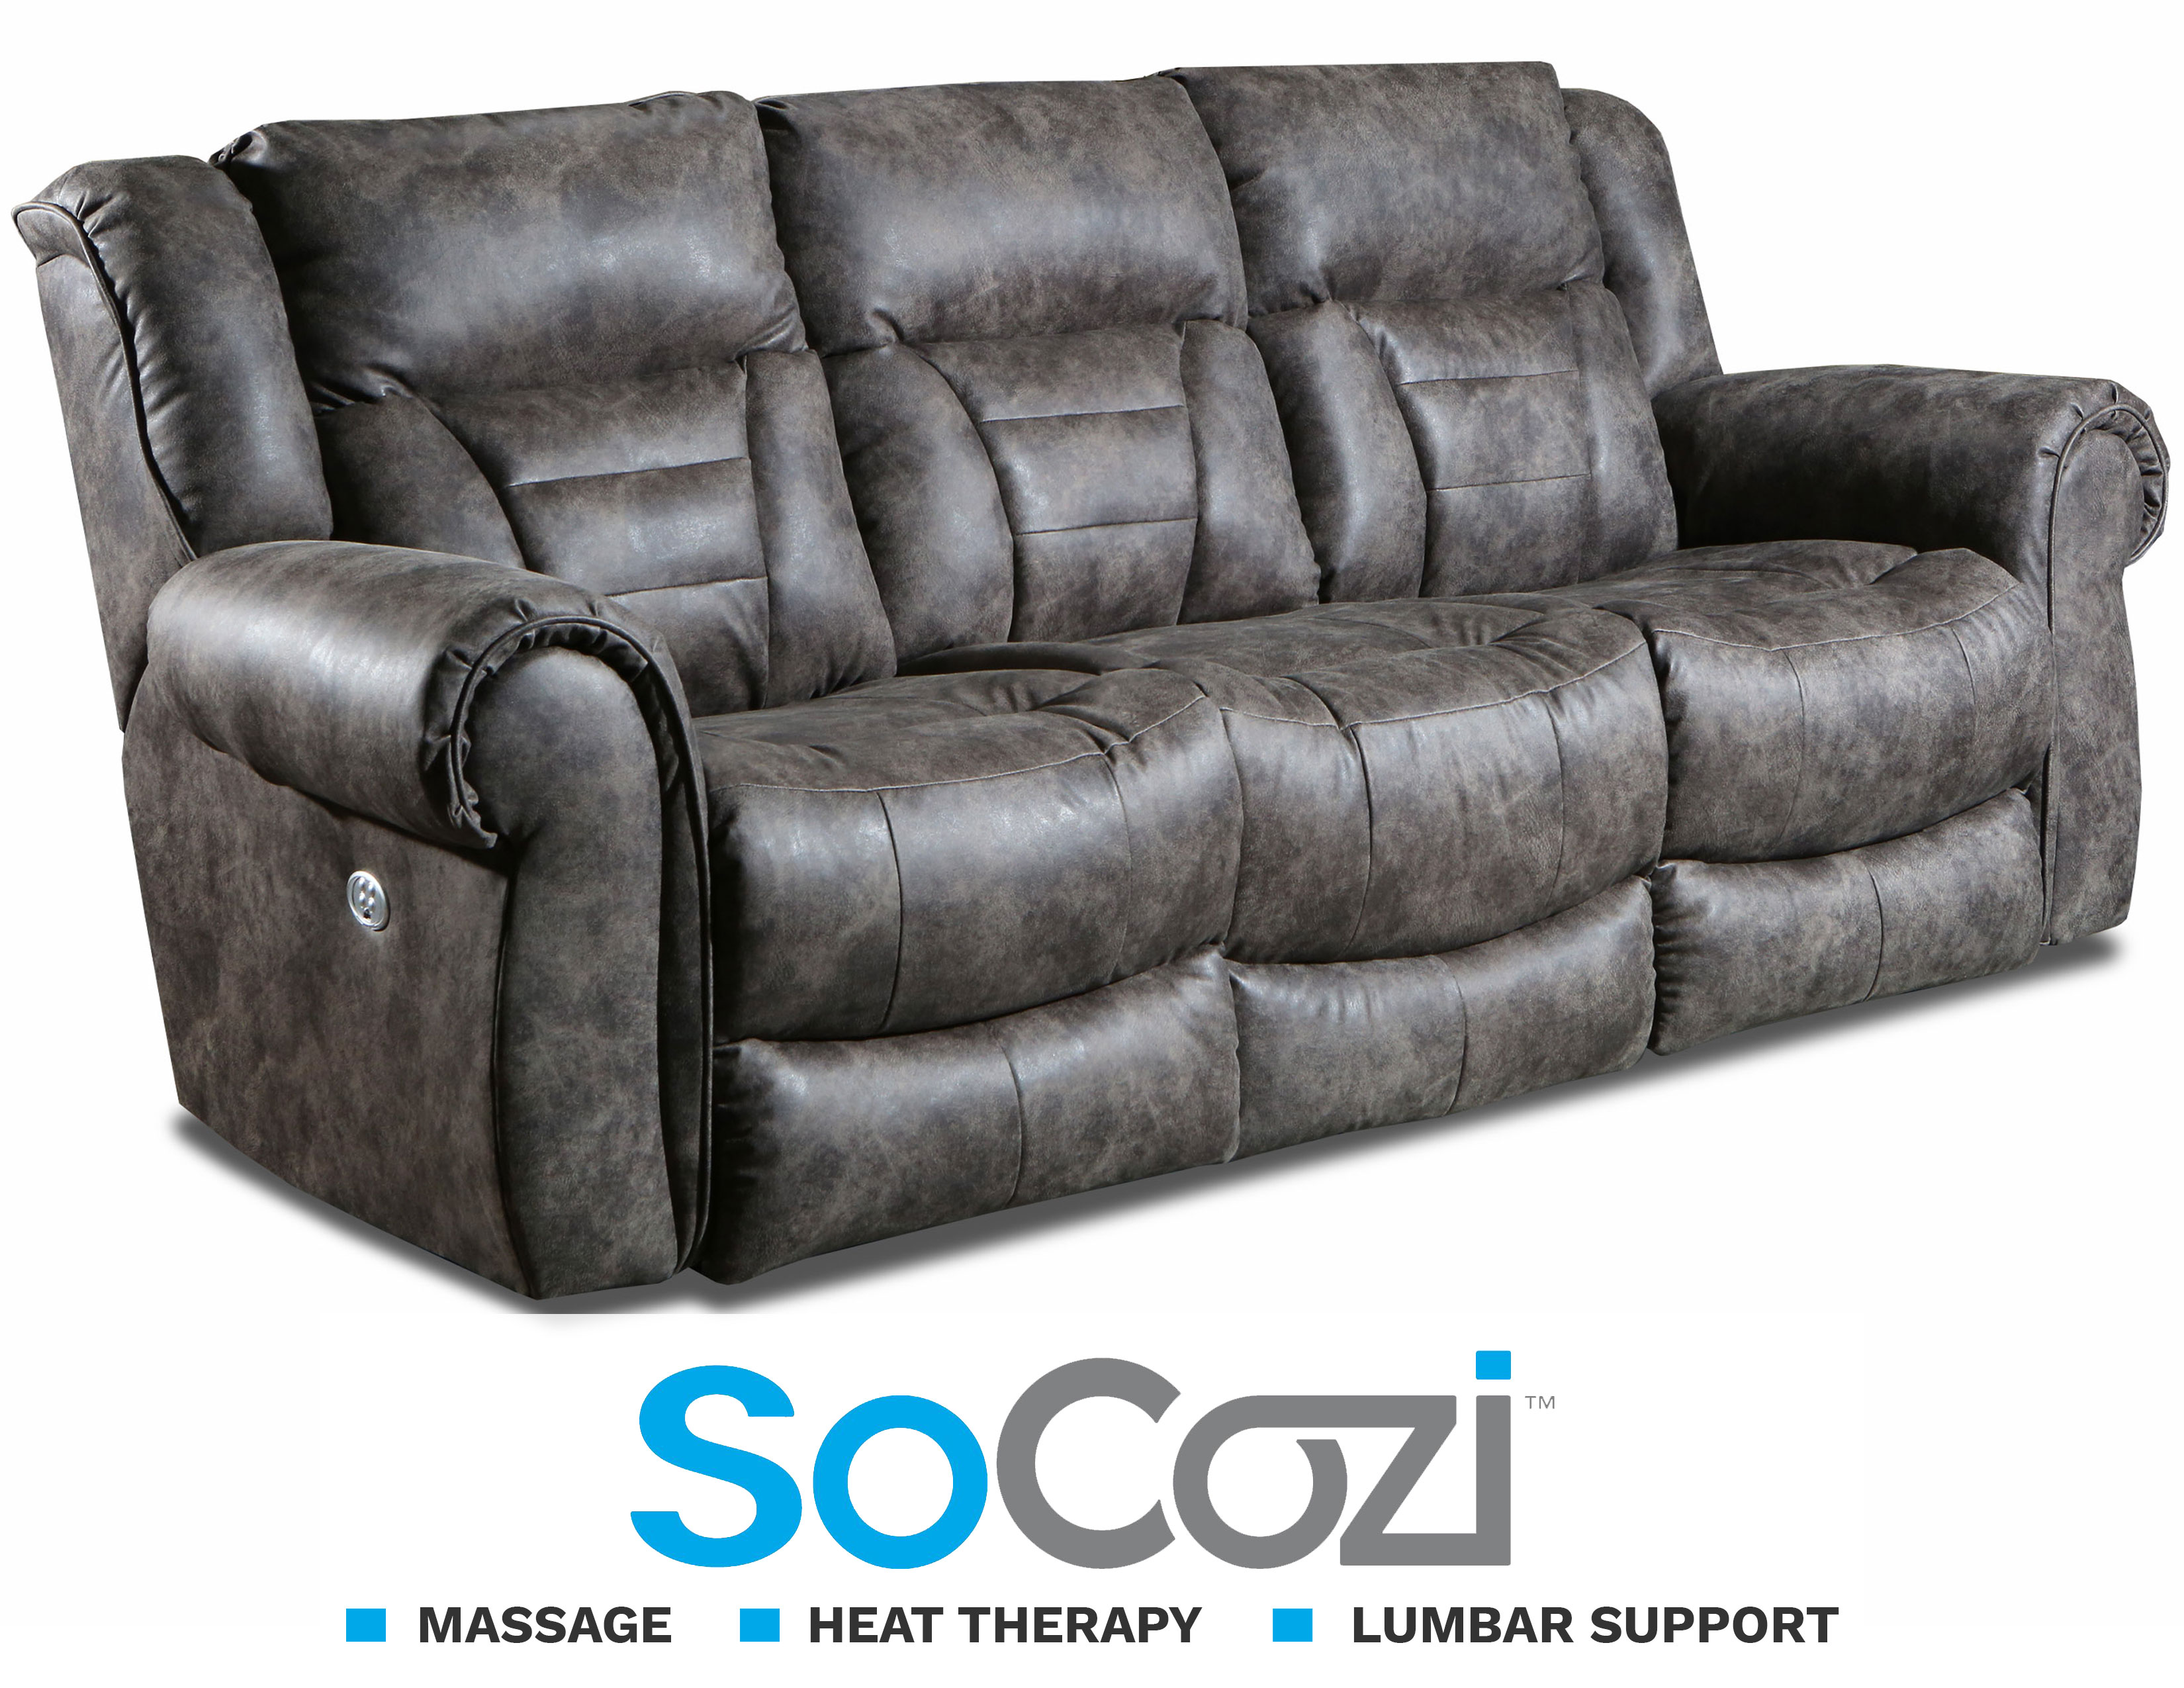 Wondrous Titan Reclining Sofa W Massage Heat Lumbar Sofas And Caraccident5 Cool Chair Designs And Ideas Caraccident5Info